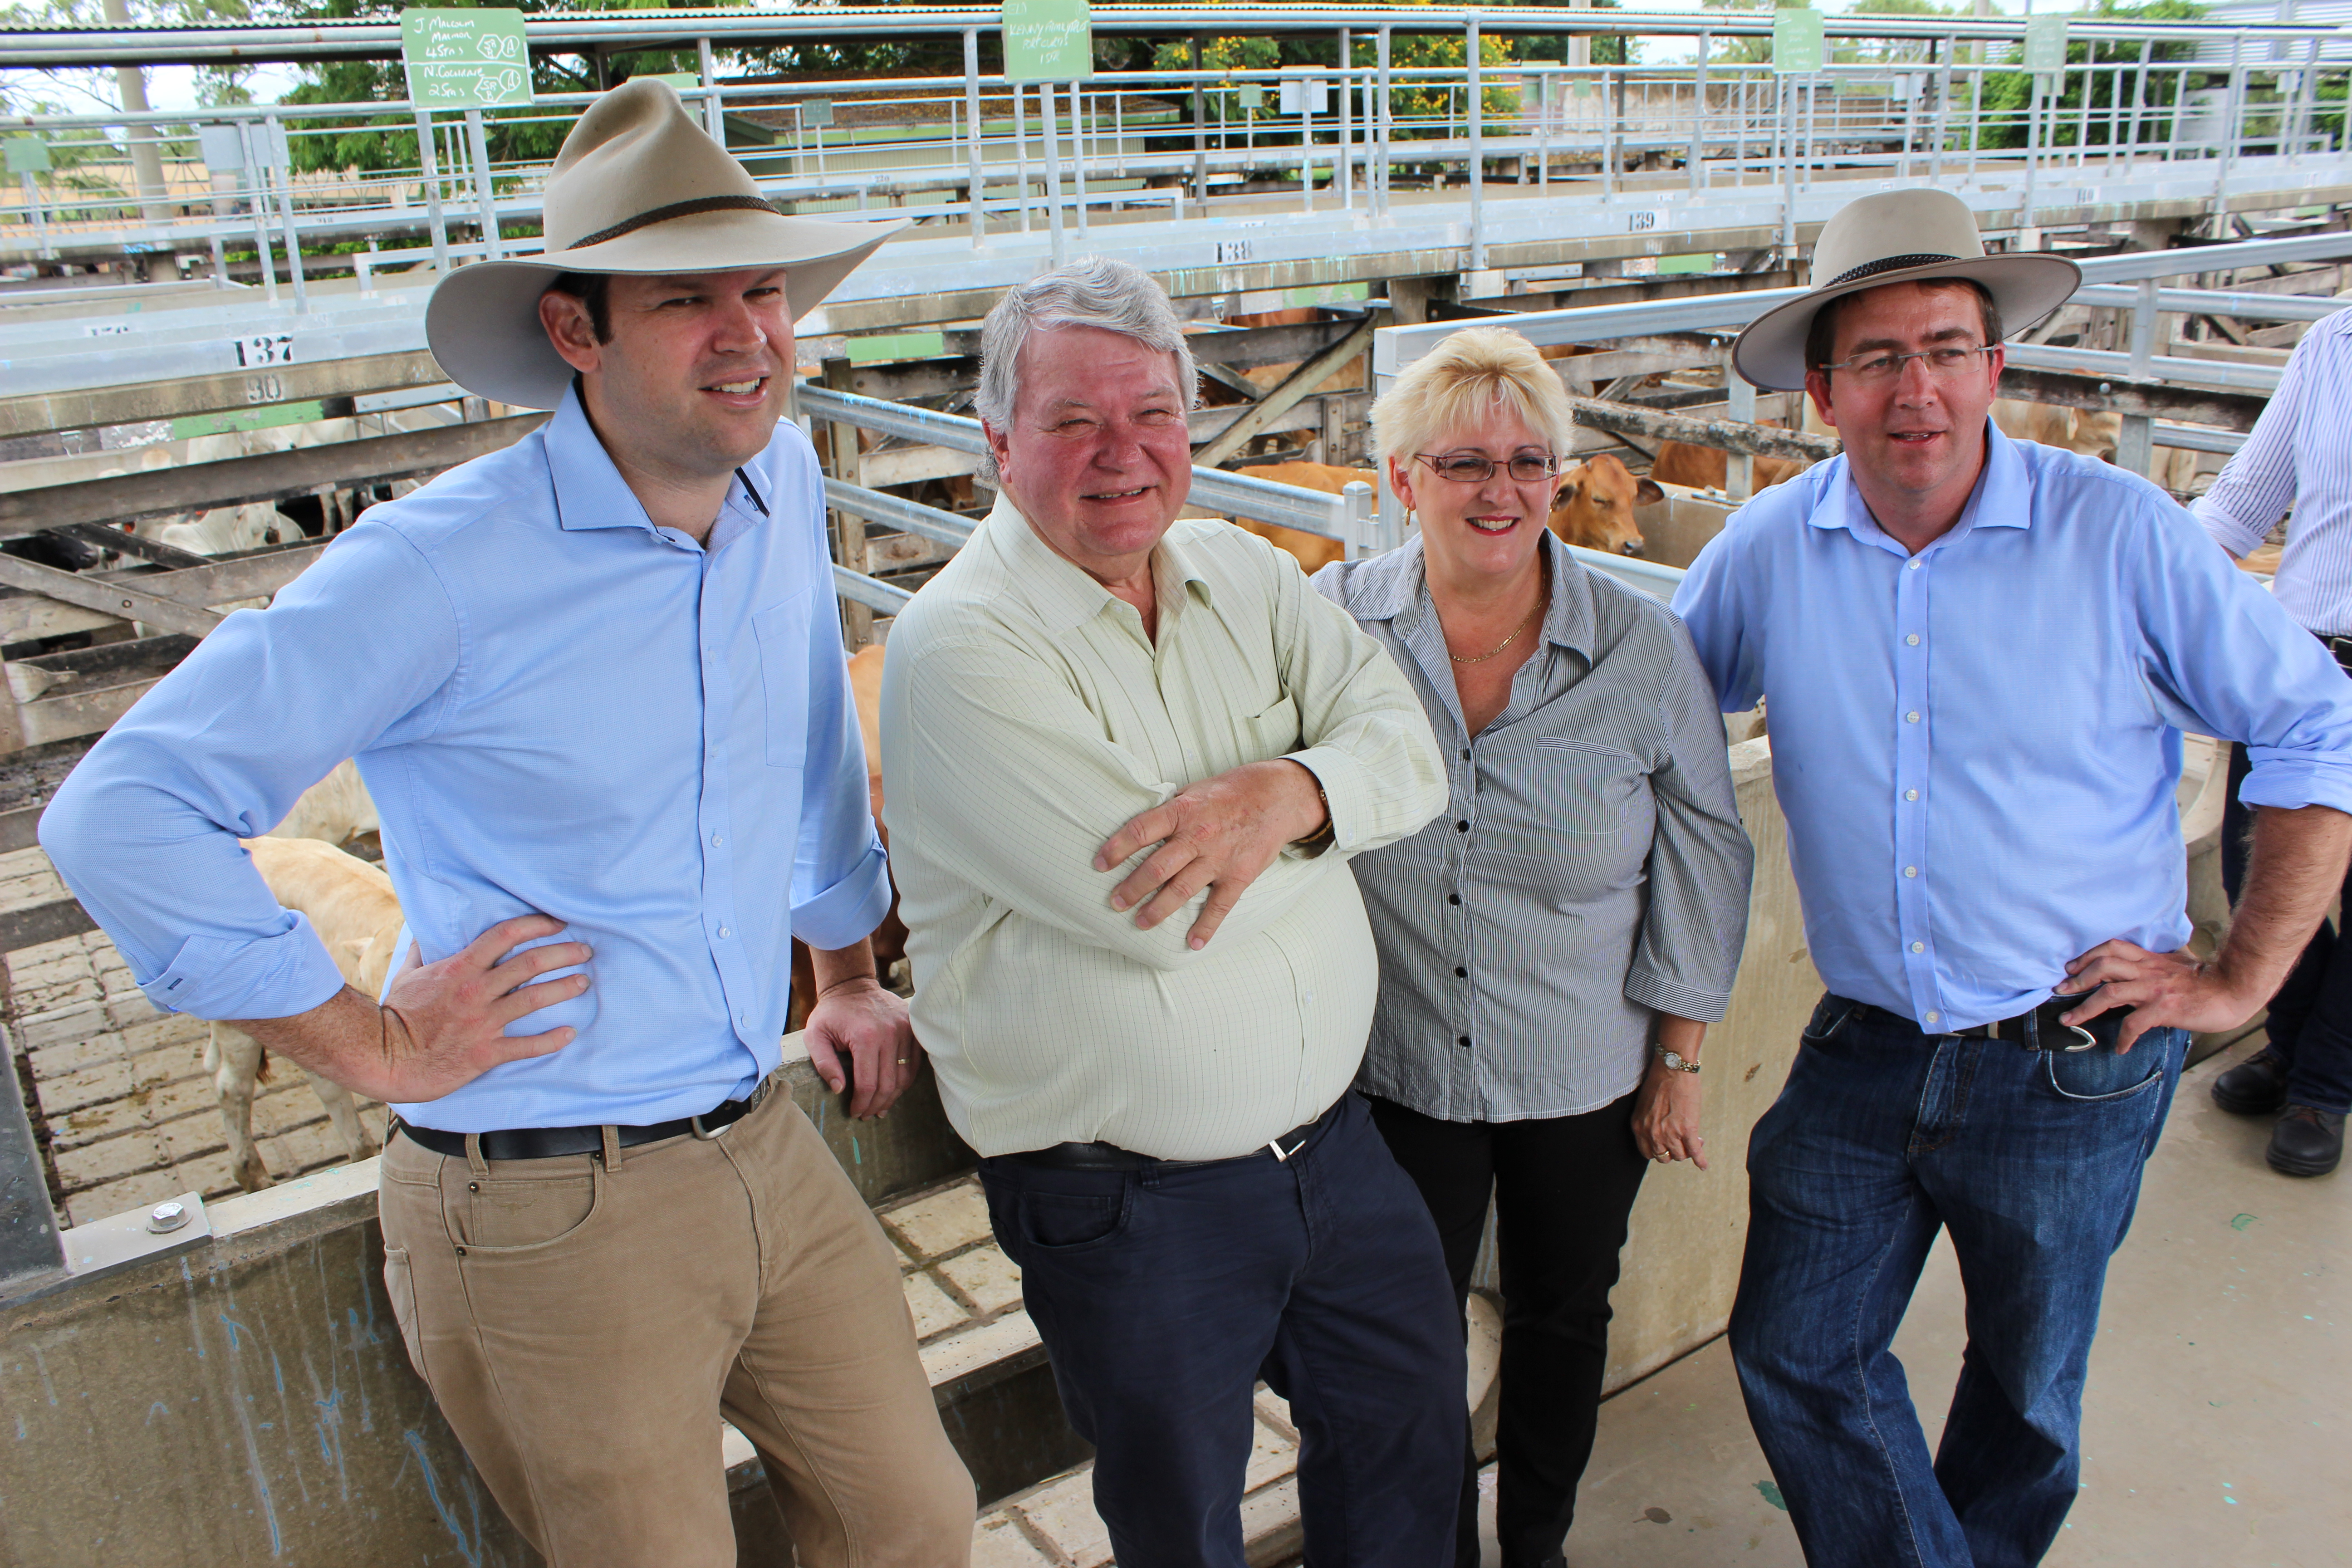 Michelle Landry MP,  Senator Matt Canavan and Ken O'Dowd MP and  Senator James McGrath at the CQ cattle selling complex near Rockhampton.  The beef sector will be hit hard by Labor's vegetation laws in Qld.